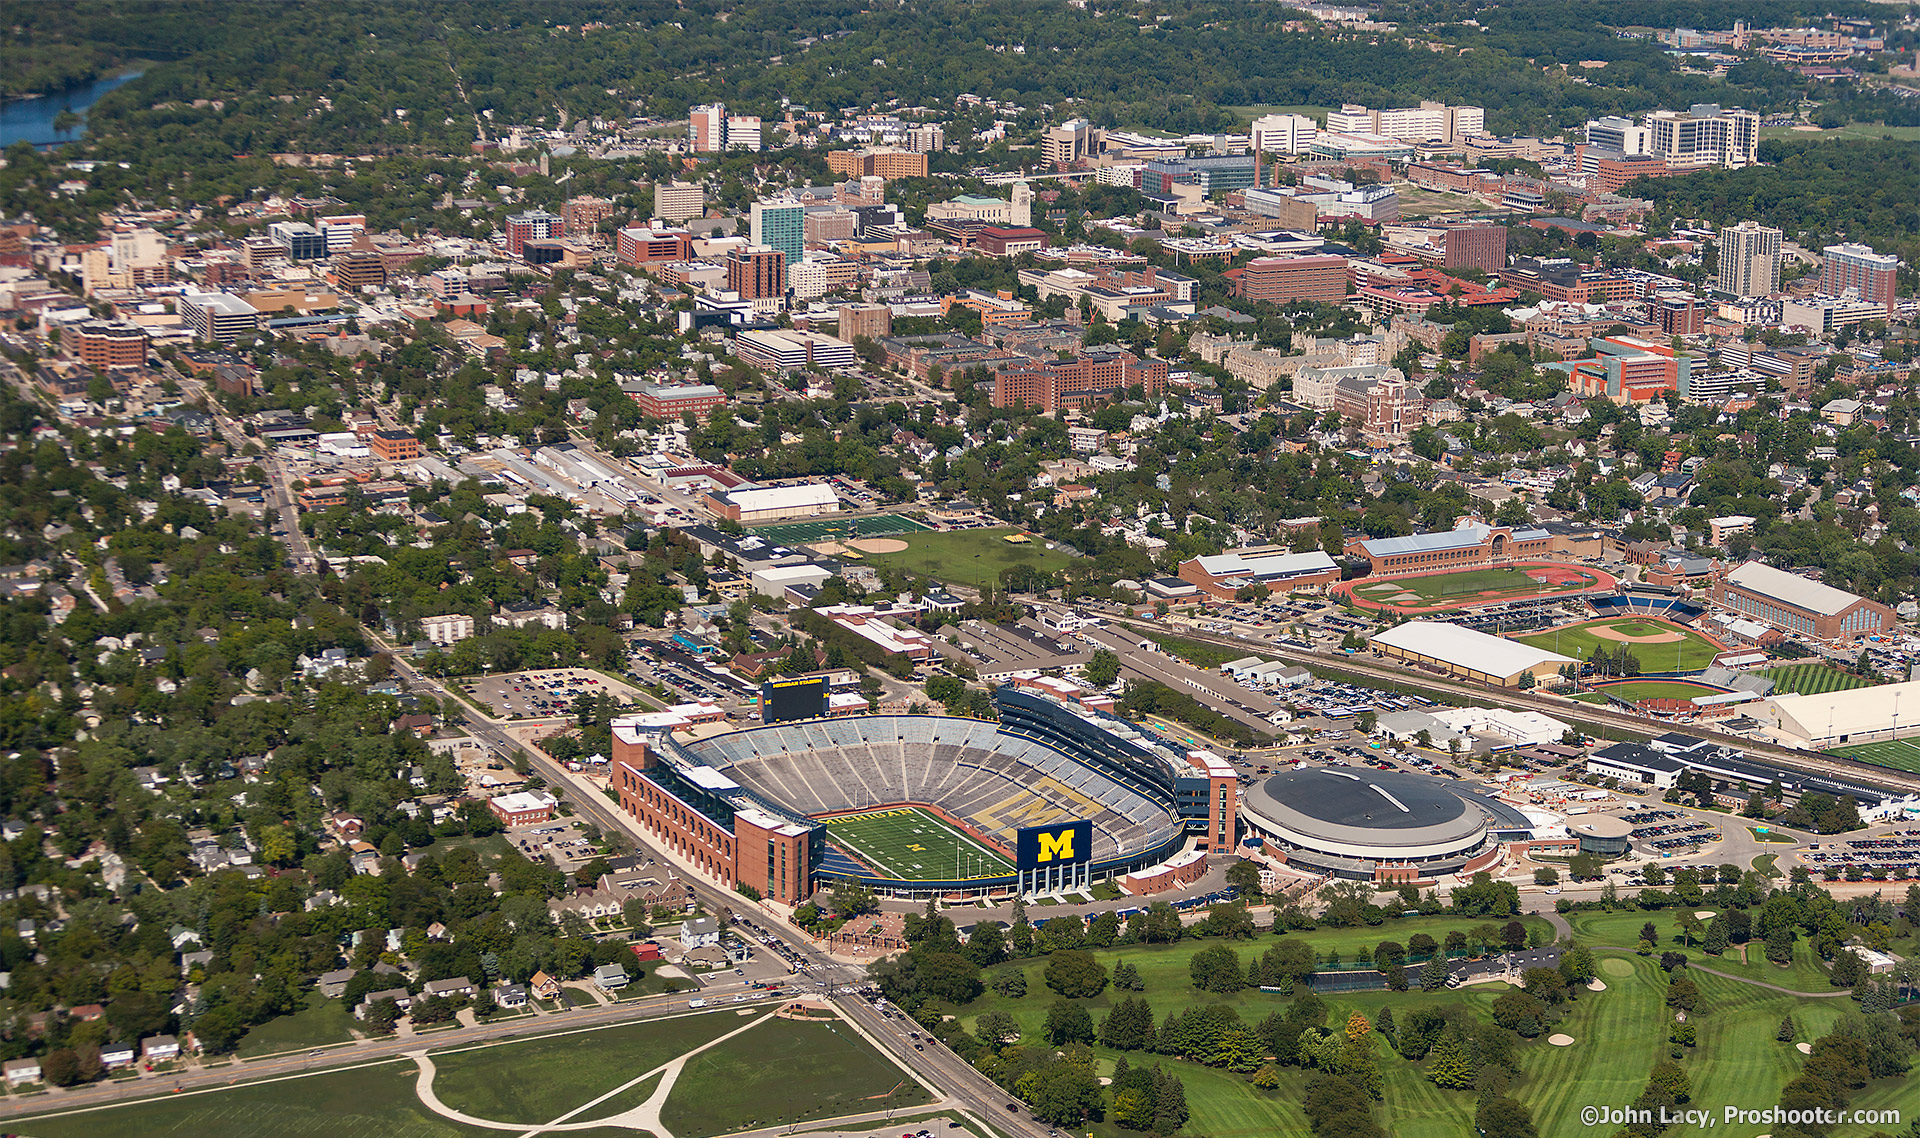 Michigan Stadium aerial photo with Ann Arbor and Campus in background by Proshooter